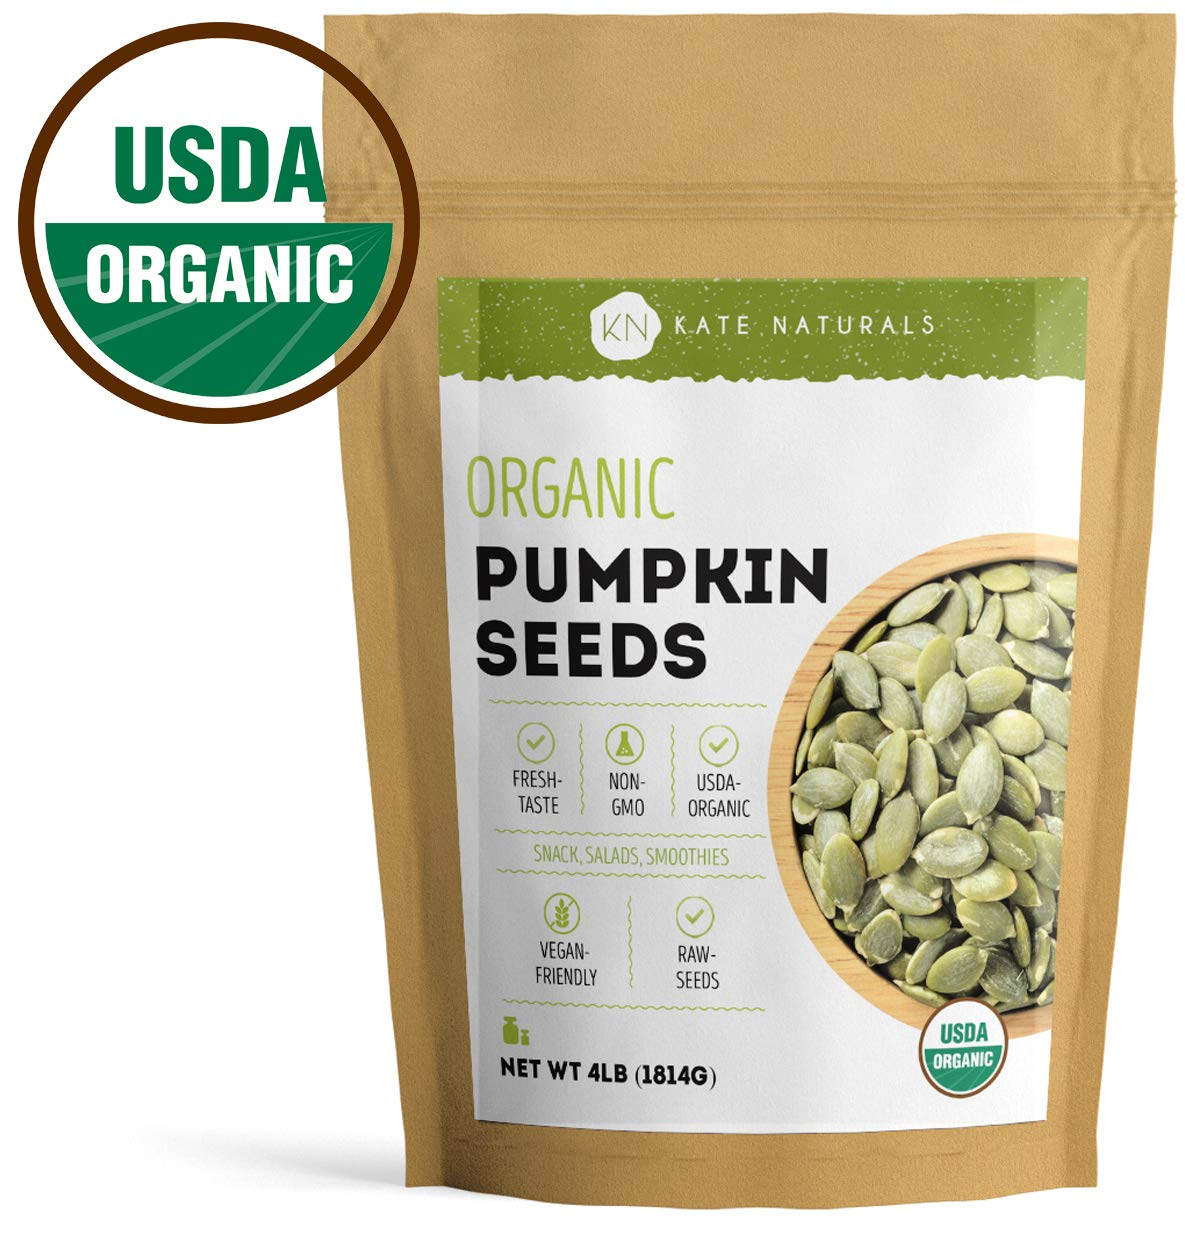 Organic Pumpkin Seeds Raw by Kate Naturals. Perfect for Snack, Salads & Smoothies. Unsalted. Premium Pepitas. USDA Organic and NON-GMO. Large Resealable Bag. 1-Year Guarantee. ((64 oz)) by Kate Naturals